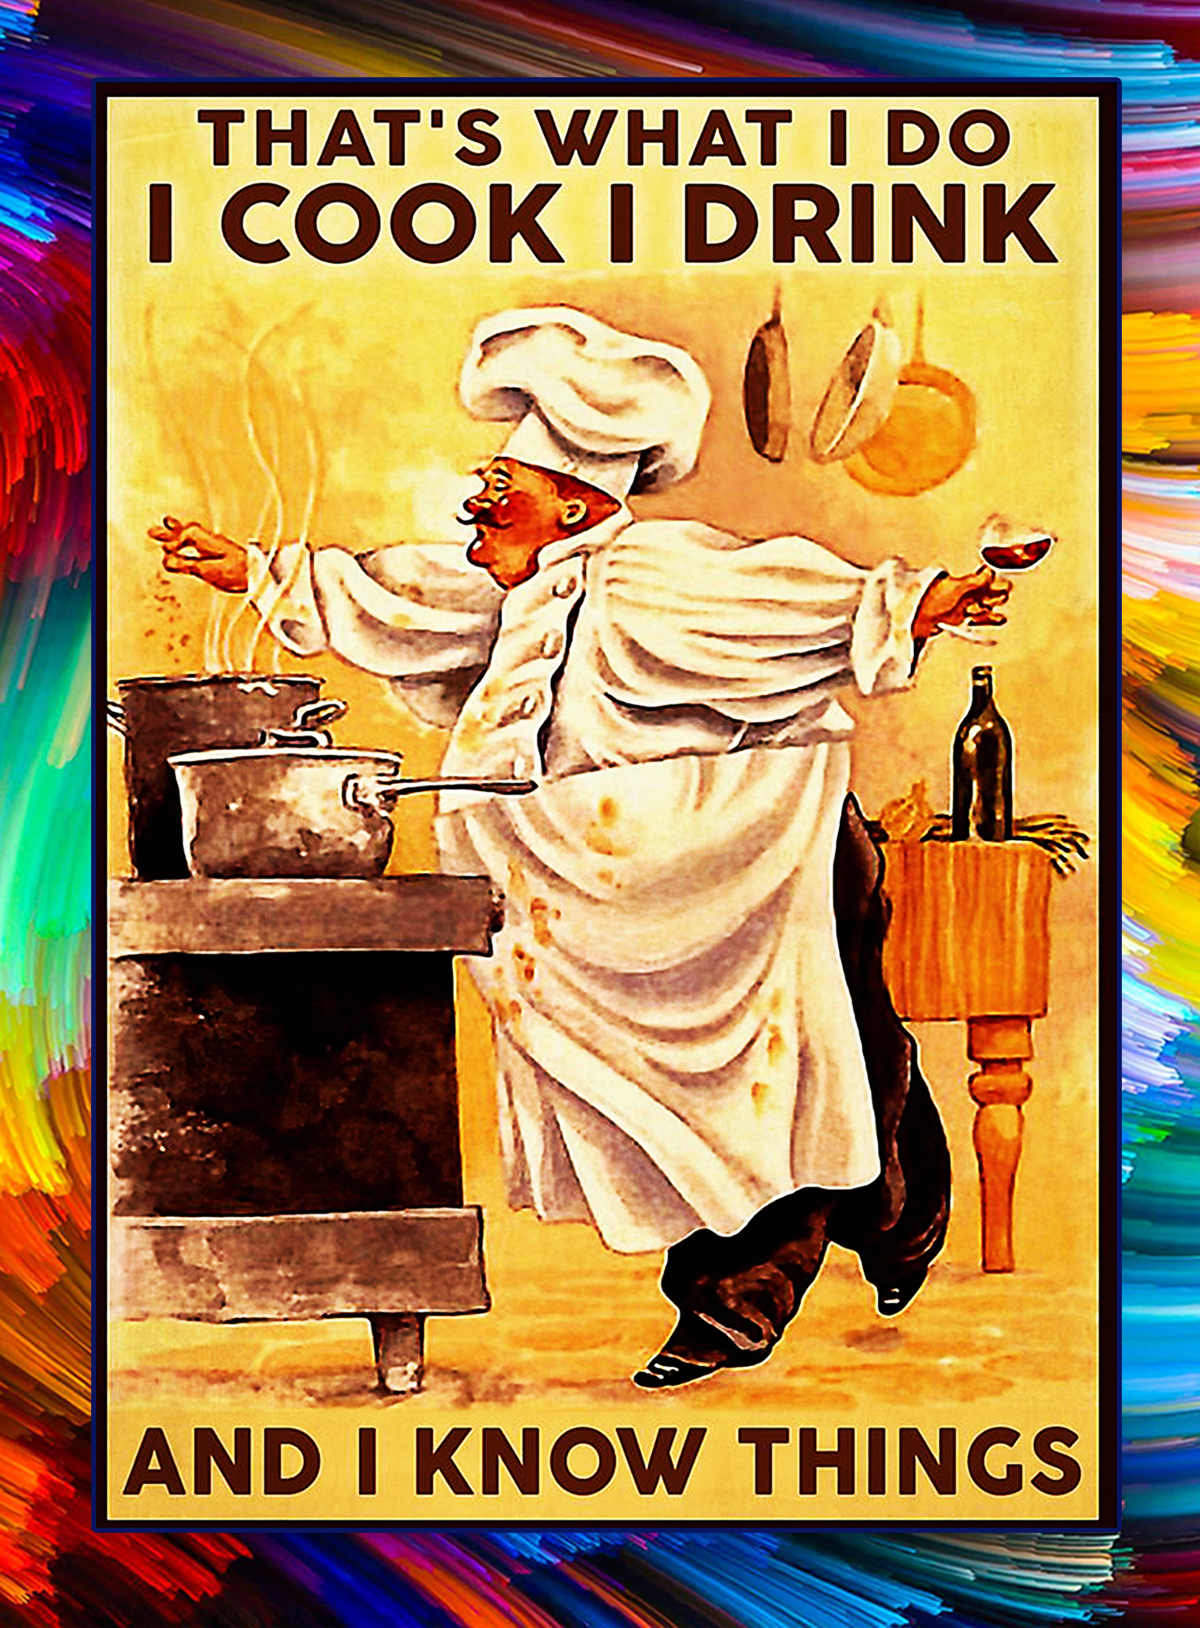 That's what i do i cook i drink and i know things chef poster - A1